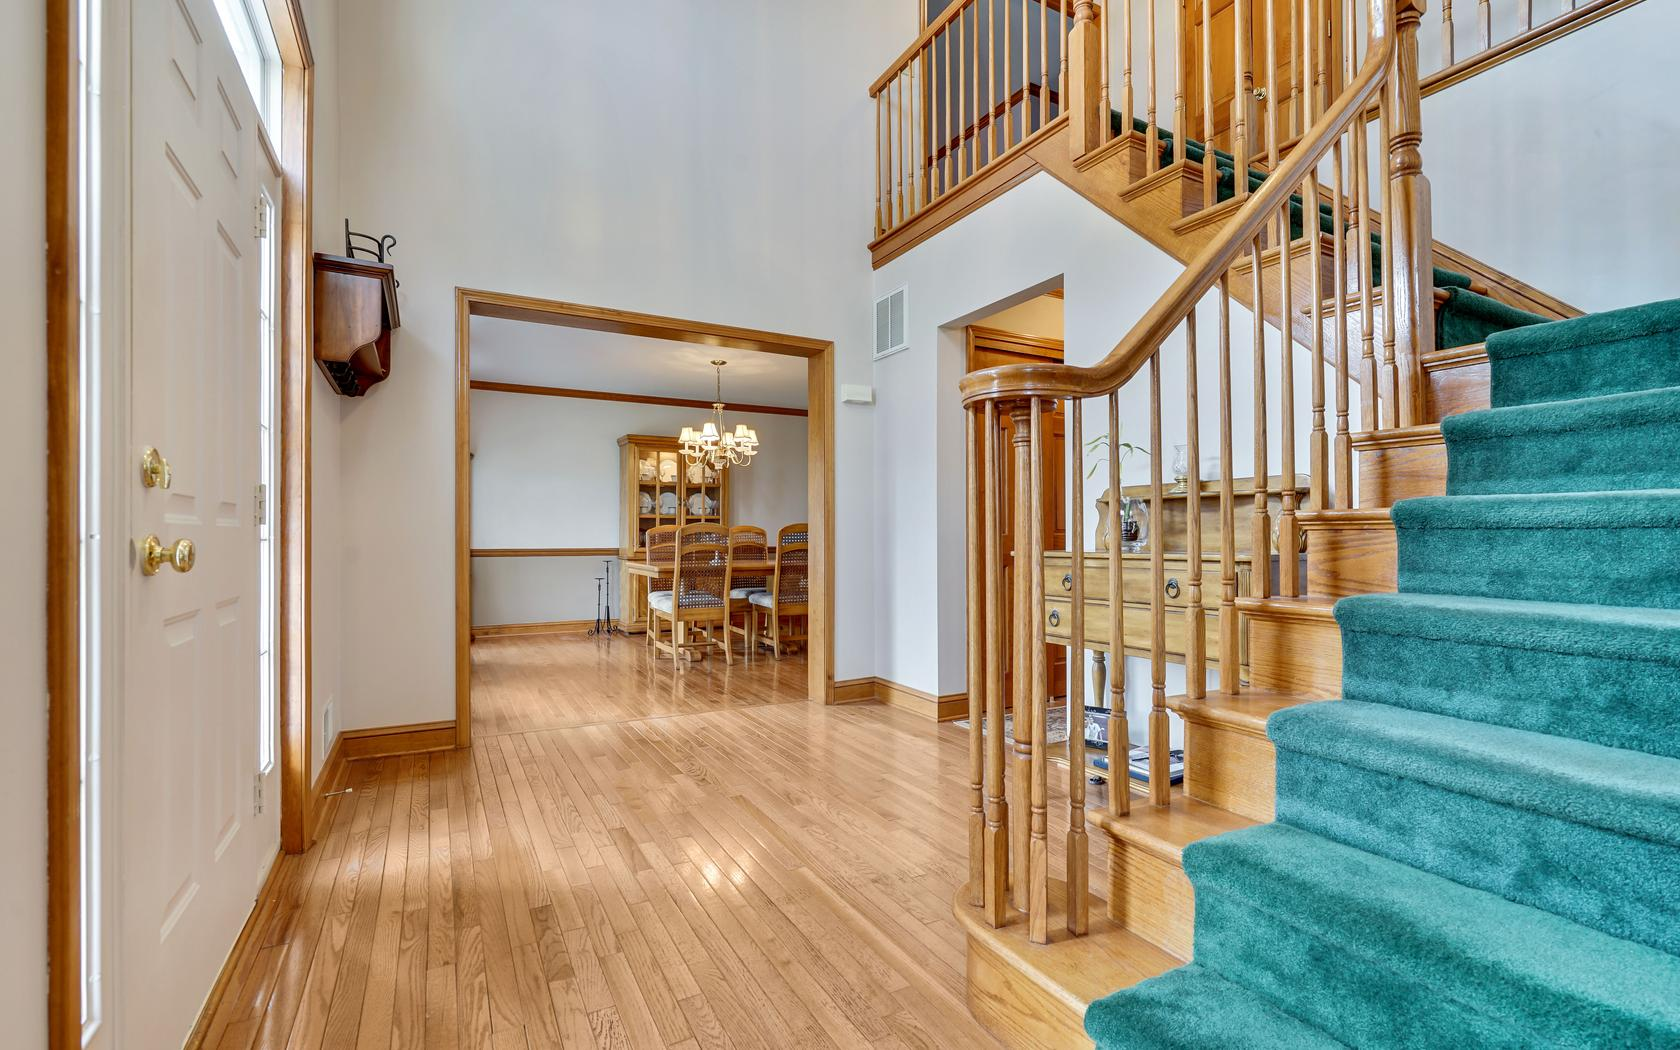 Additional photo for property listing at Orchard Crest Colonial 2310 Orchard Crest Blvd Wall, New Jersey 08736 États-Unis